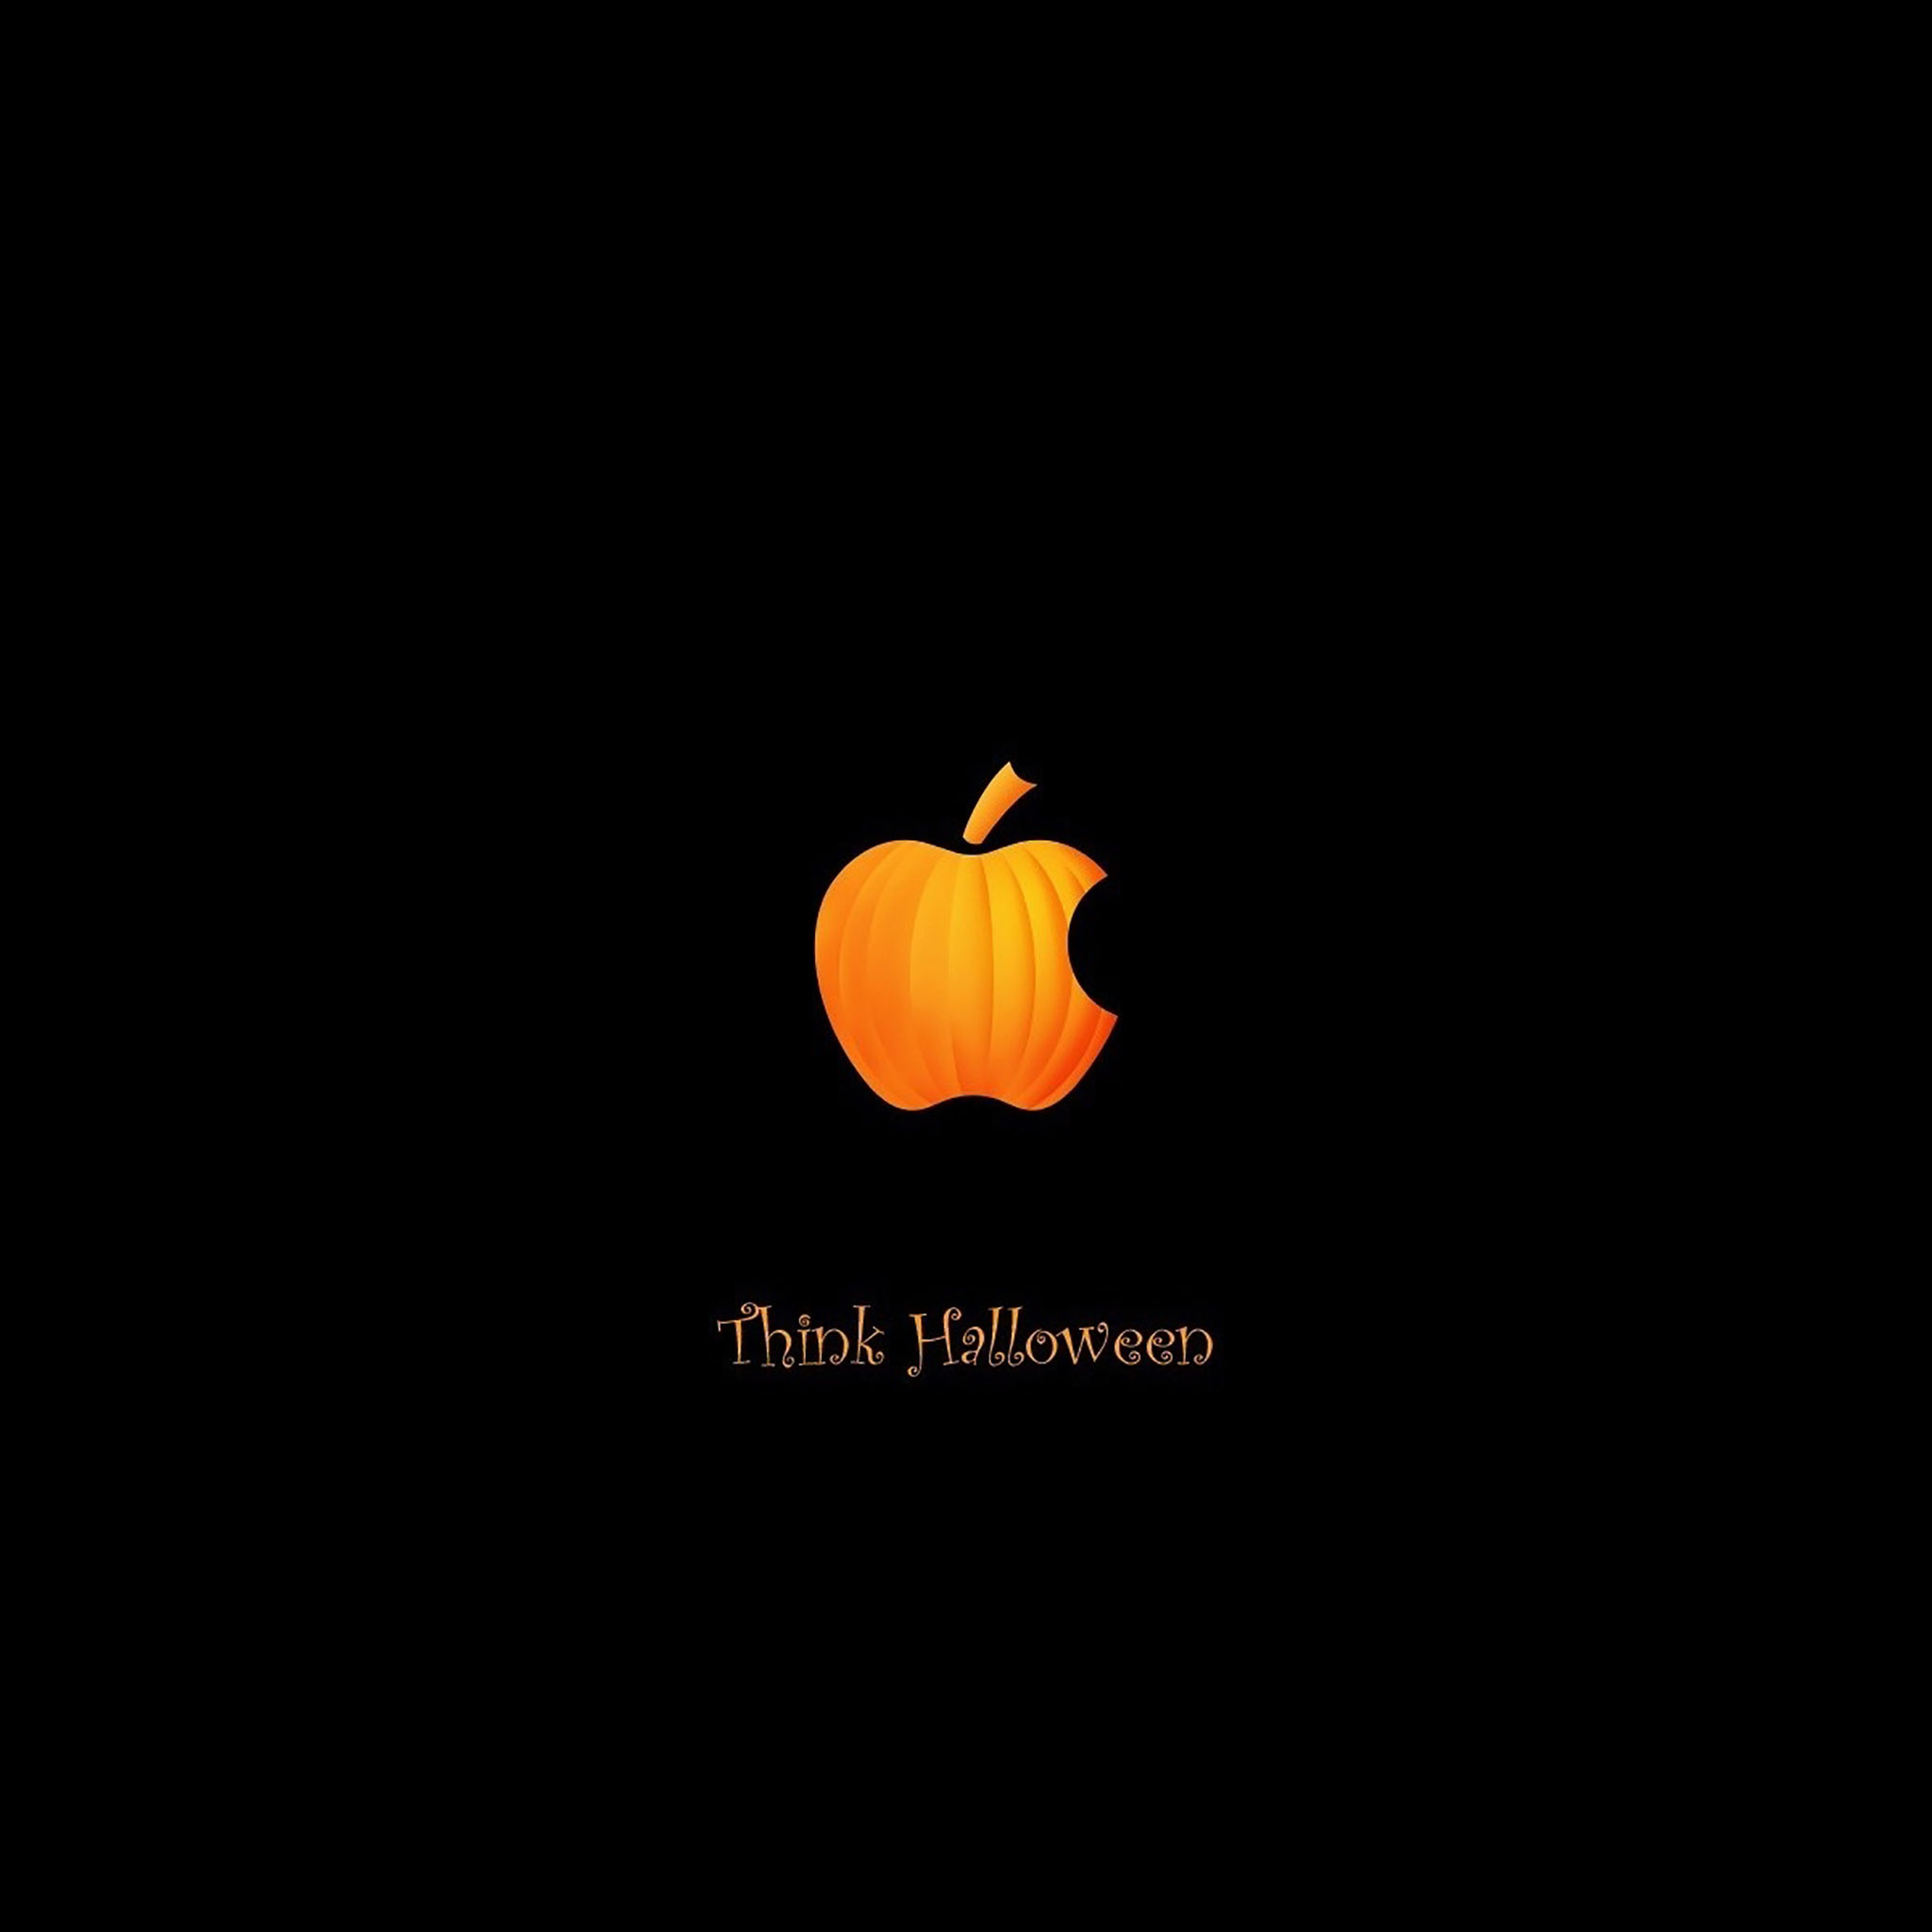 Fall Out Boy Wallpaper Ipad 20 Halloween Ipad Wallpapers